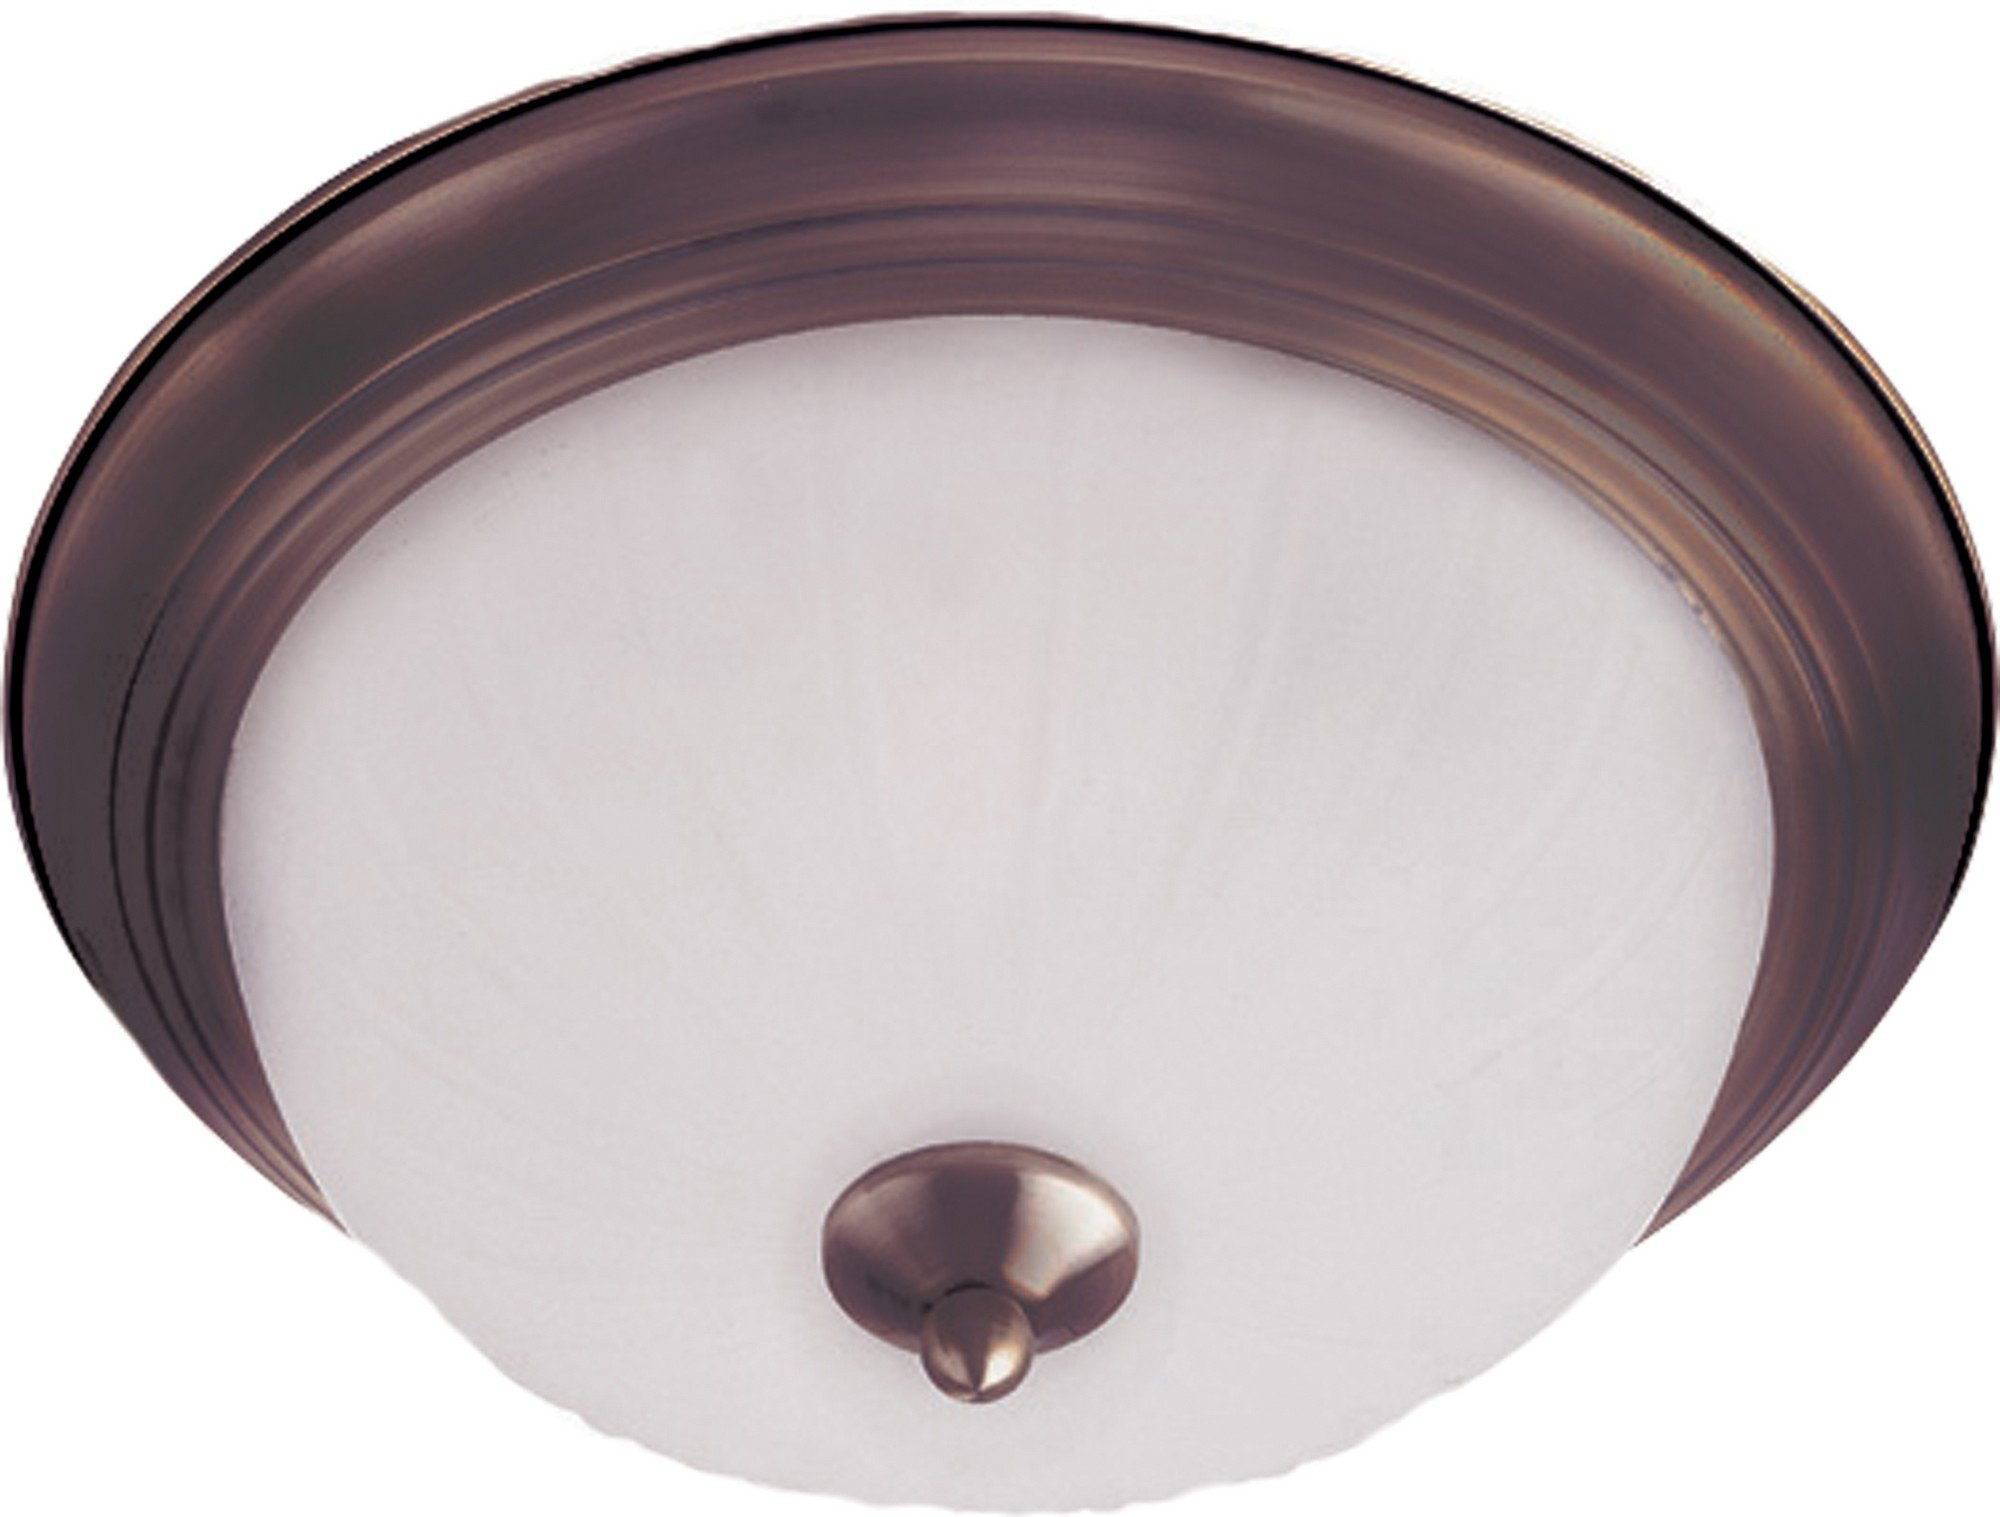 Maxim 5831FTOI Essentials 2-Light Flush Mount, Oil Rubbed Bronze Finish, Frosted Glass, MB Incandescent Incandescent Bulb , 60W Max., Dry Safety Rating, Standard Dimmable, Glass Shade Material, Rated Lumens